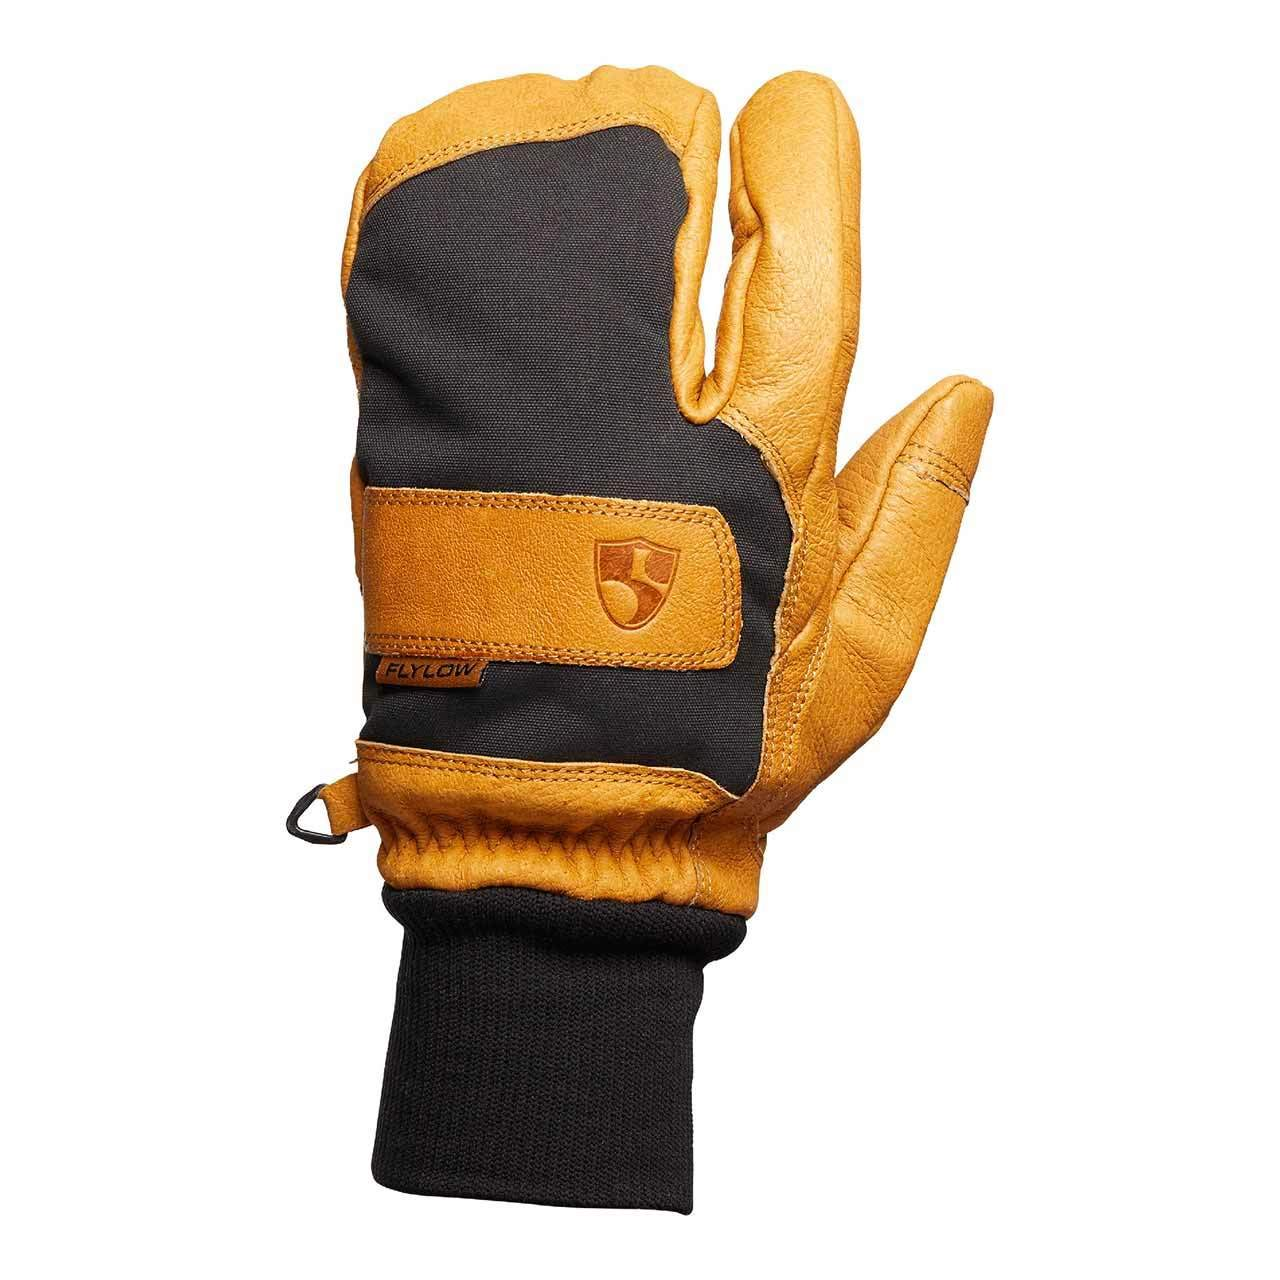 Flylow Leather Ski and Snowboarding Maine Line 3-Finger Gloves